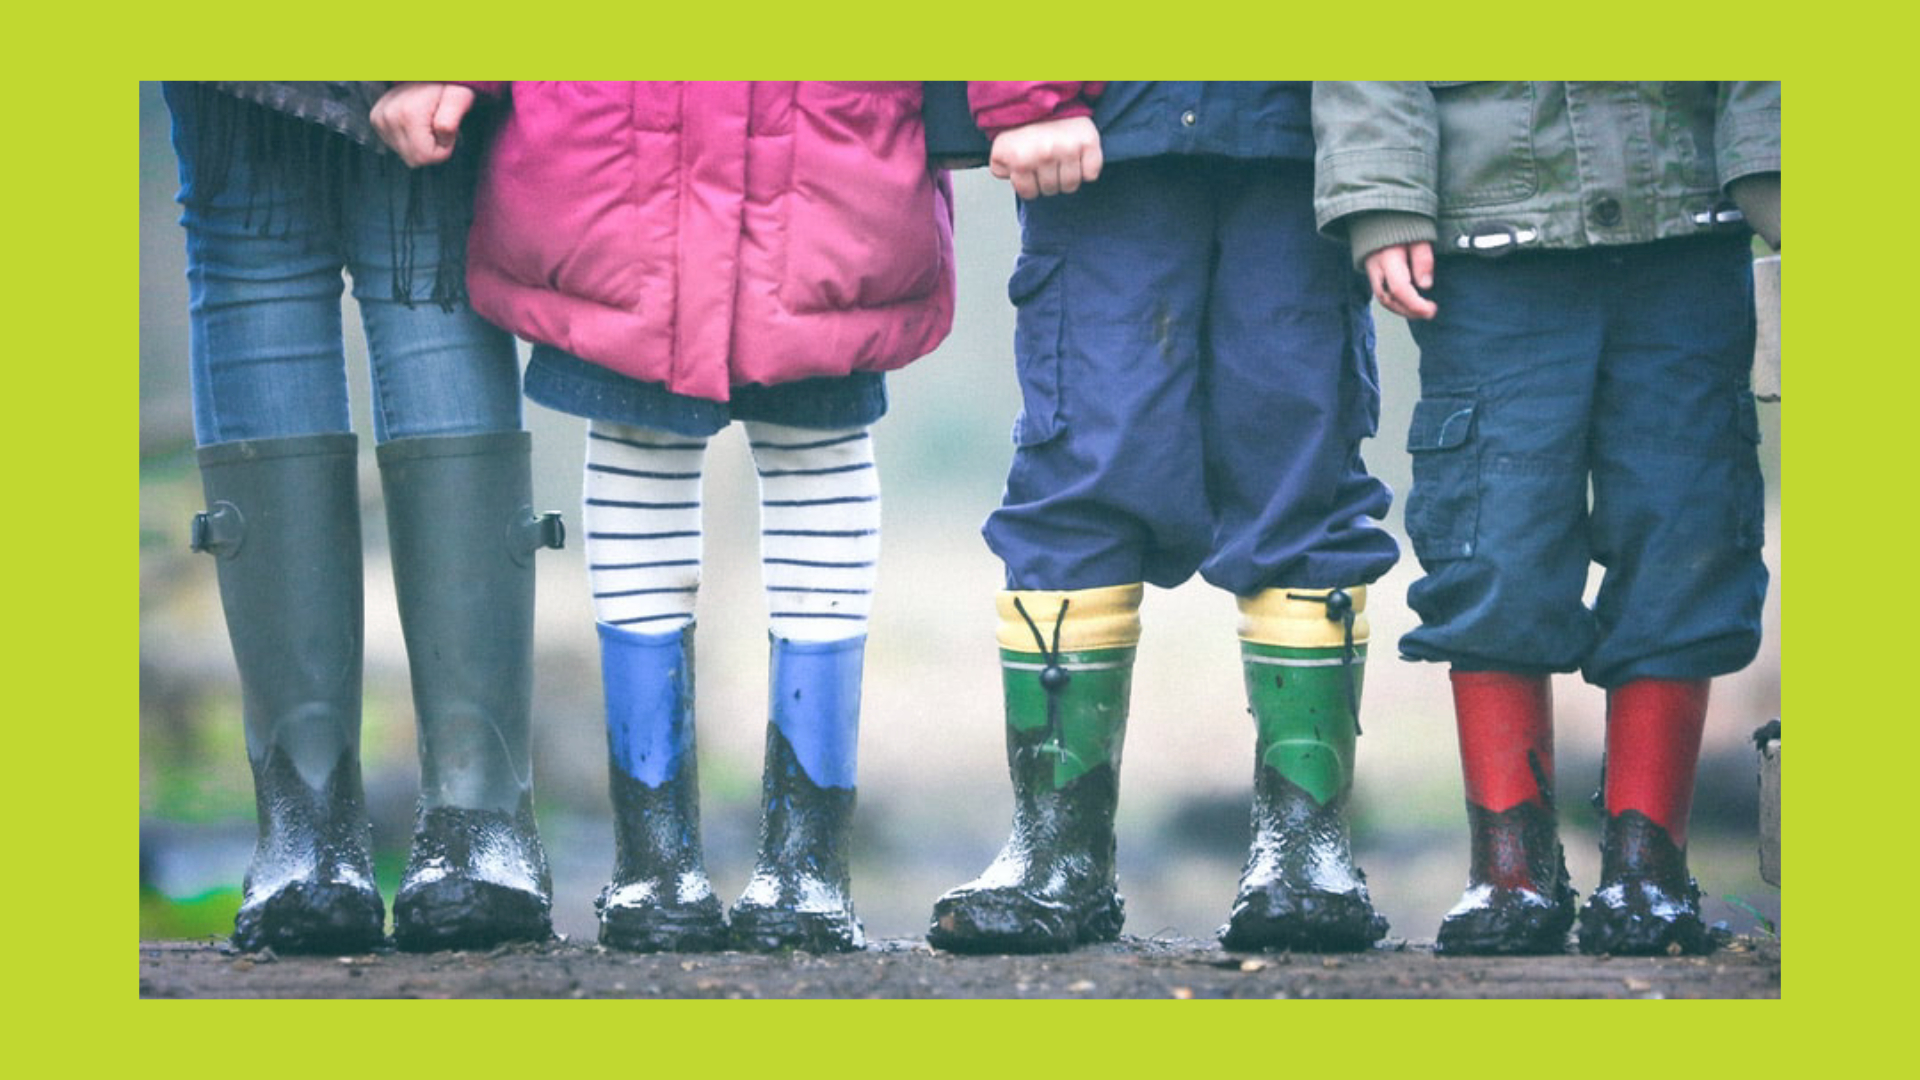 Children in muddy boots